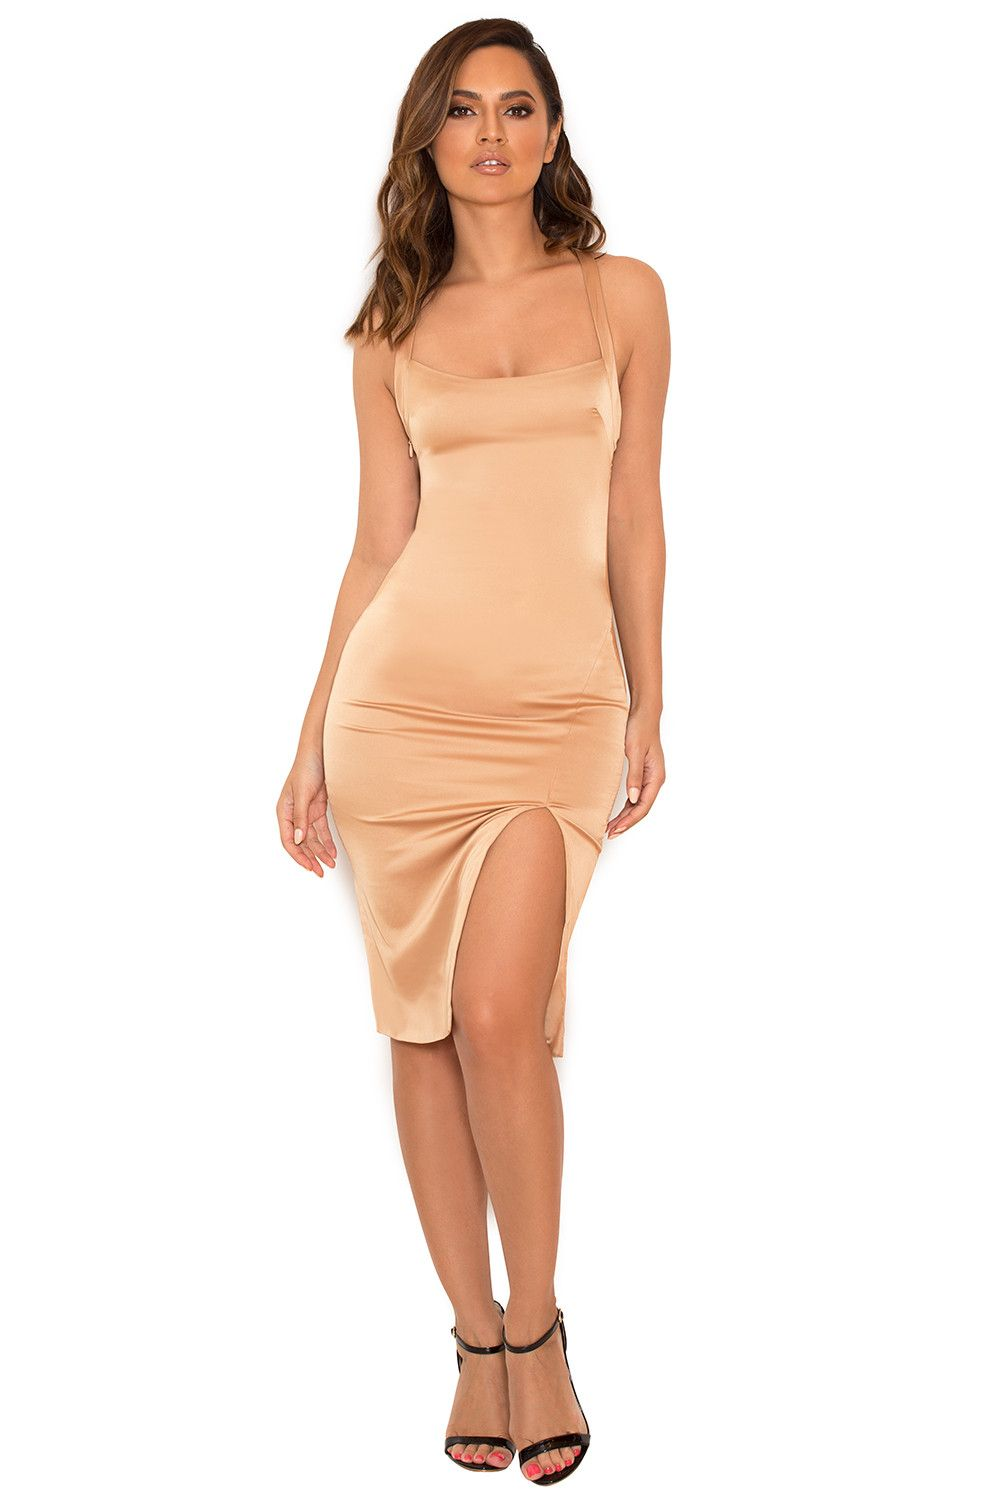 Clothing bodycon dresses uessieu nude stretch satin thigh split